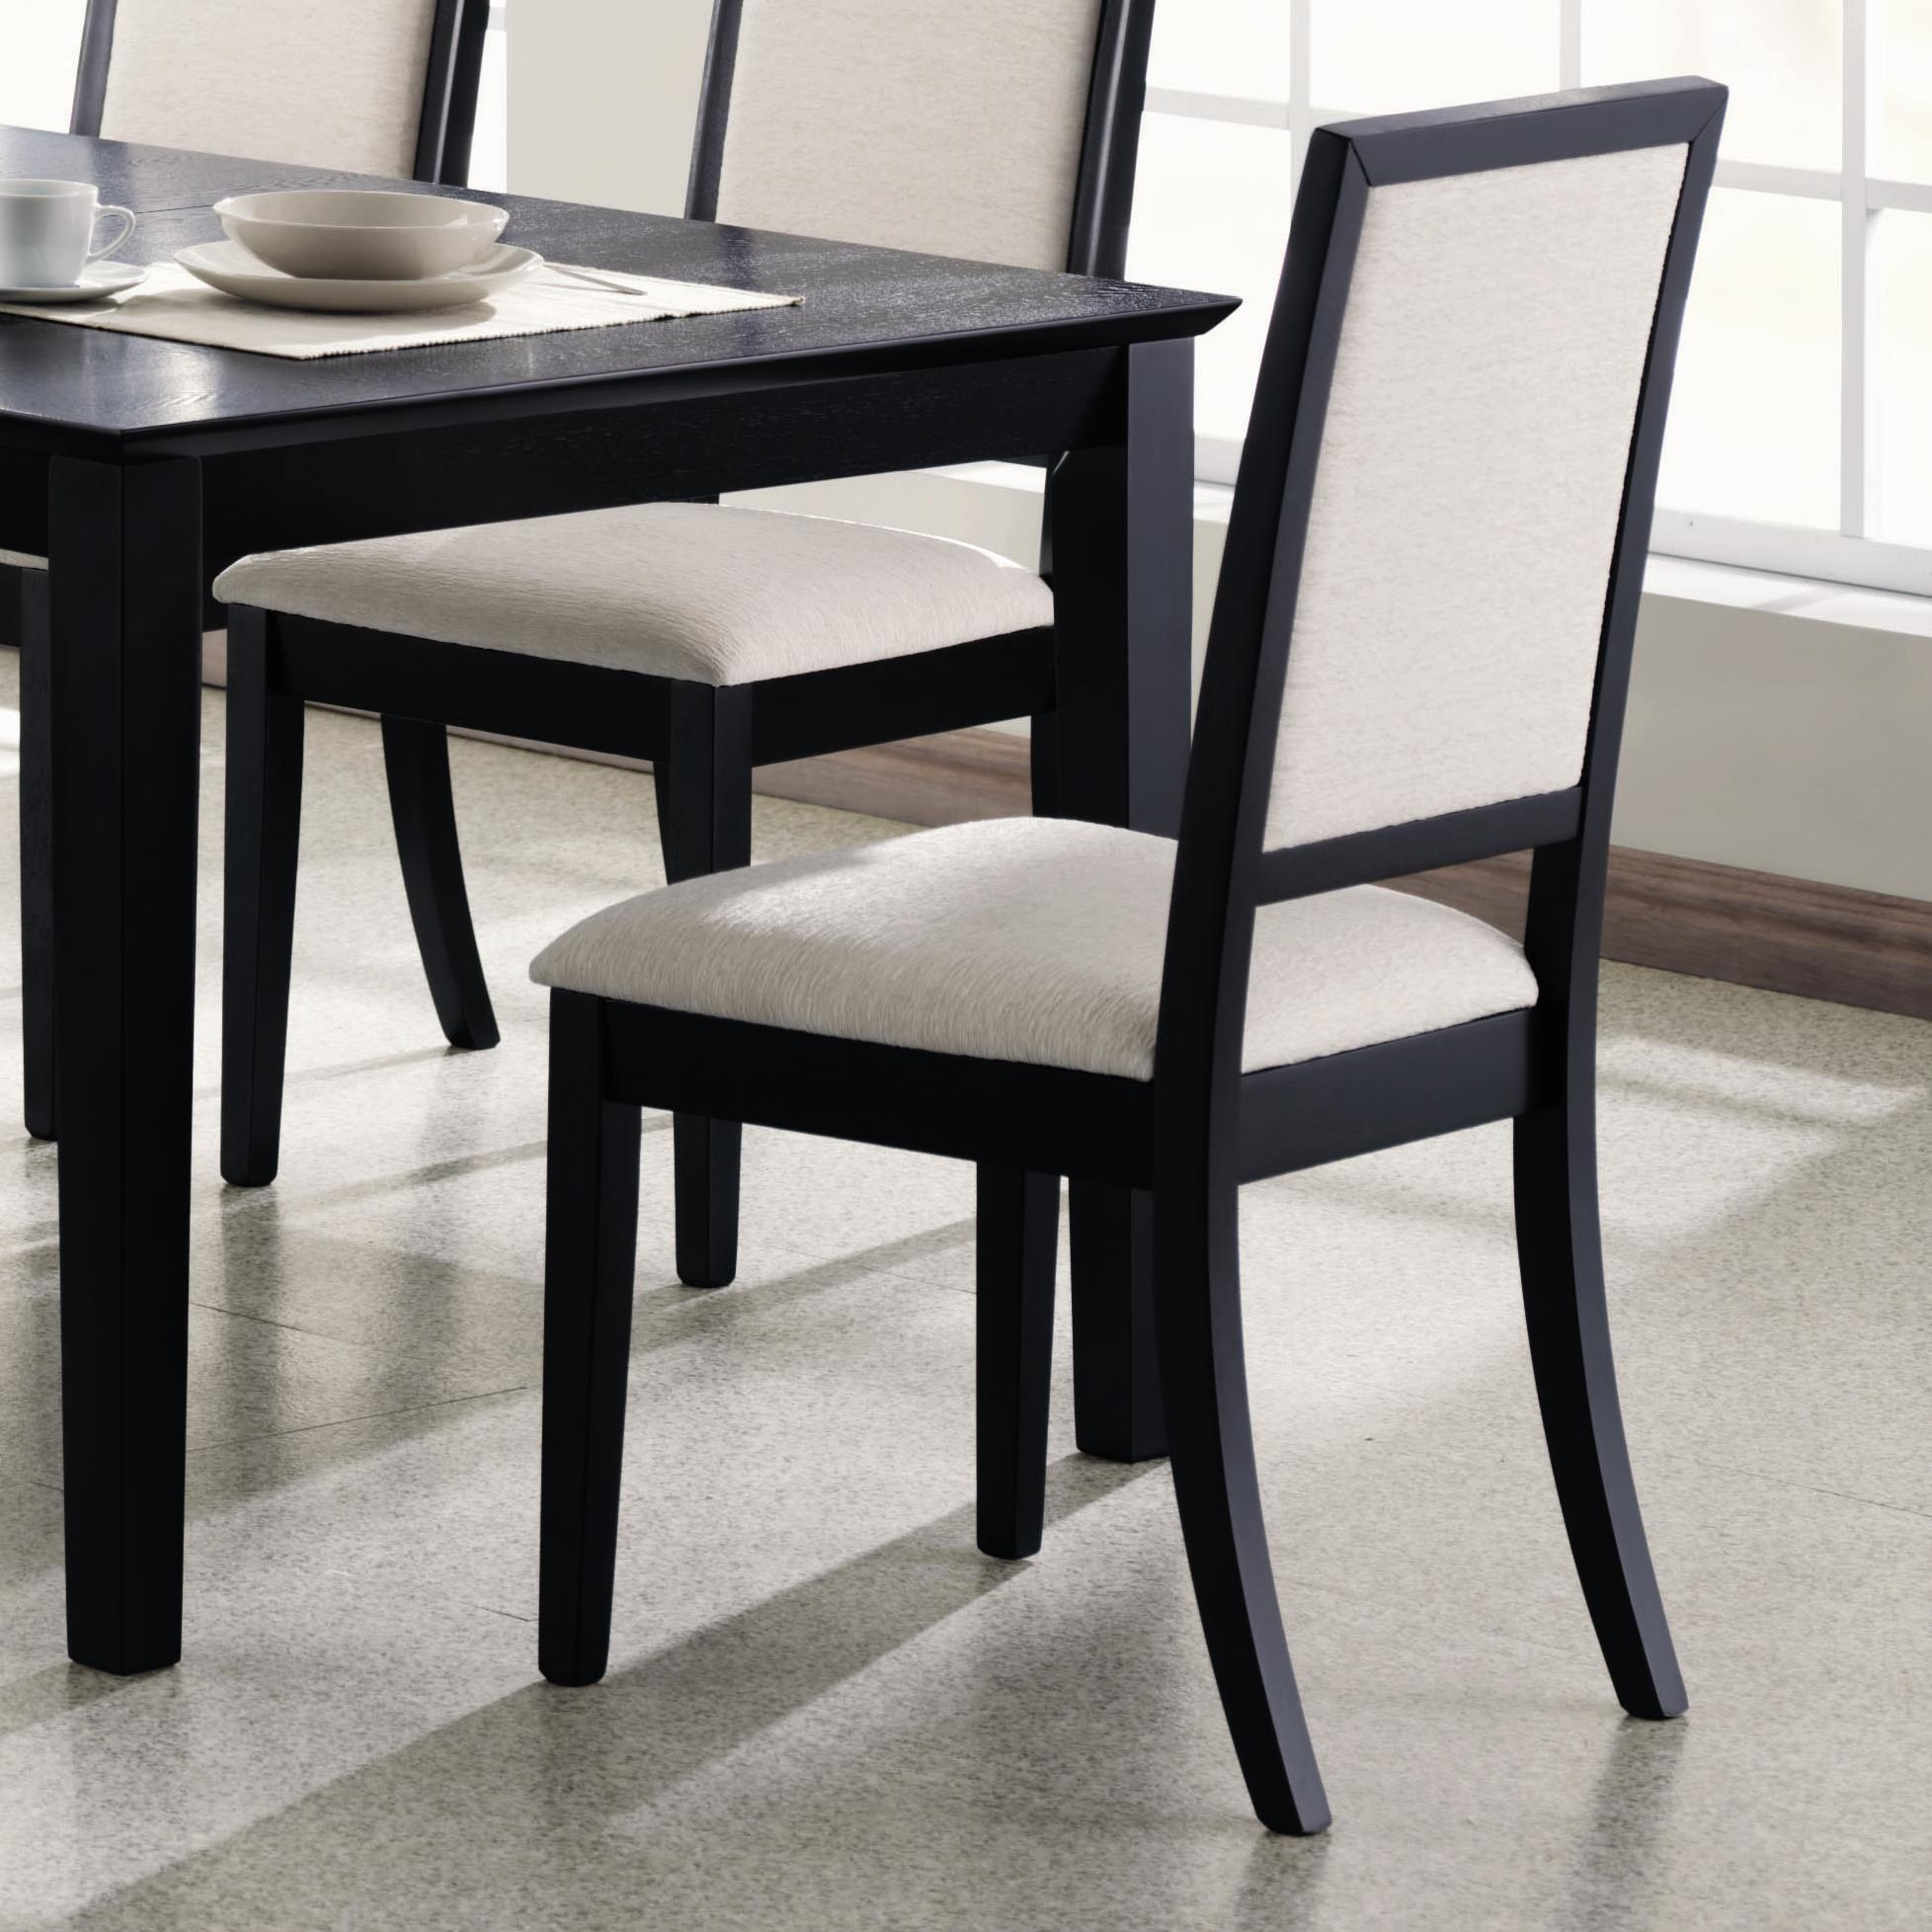 Coaster Lexton Dining Side Chair - Item Number: 101562